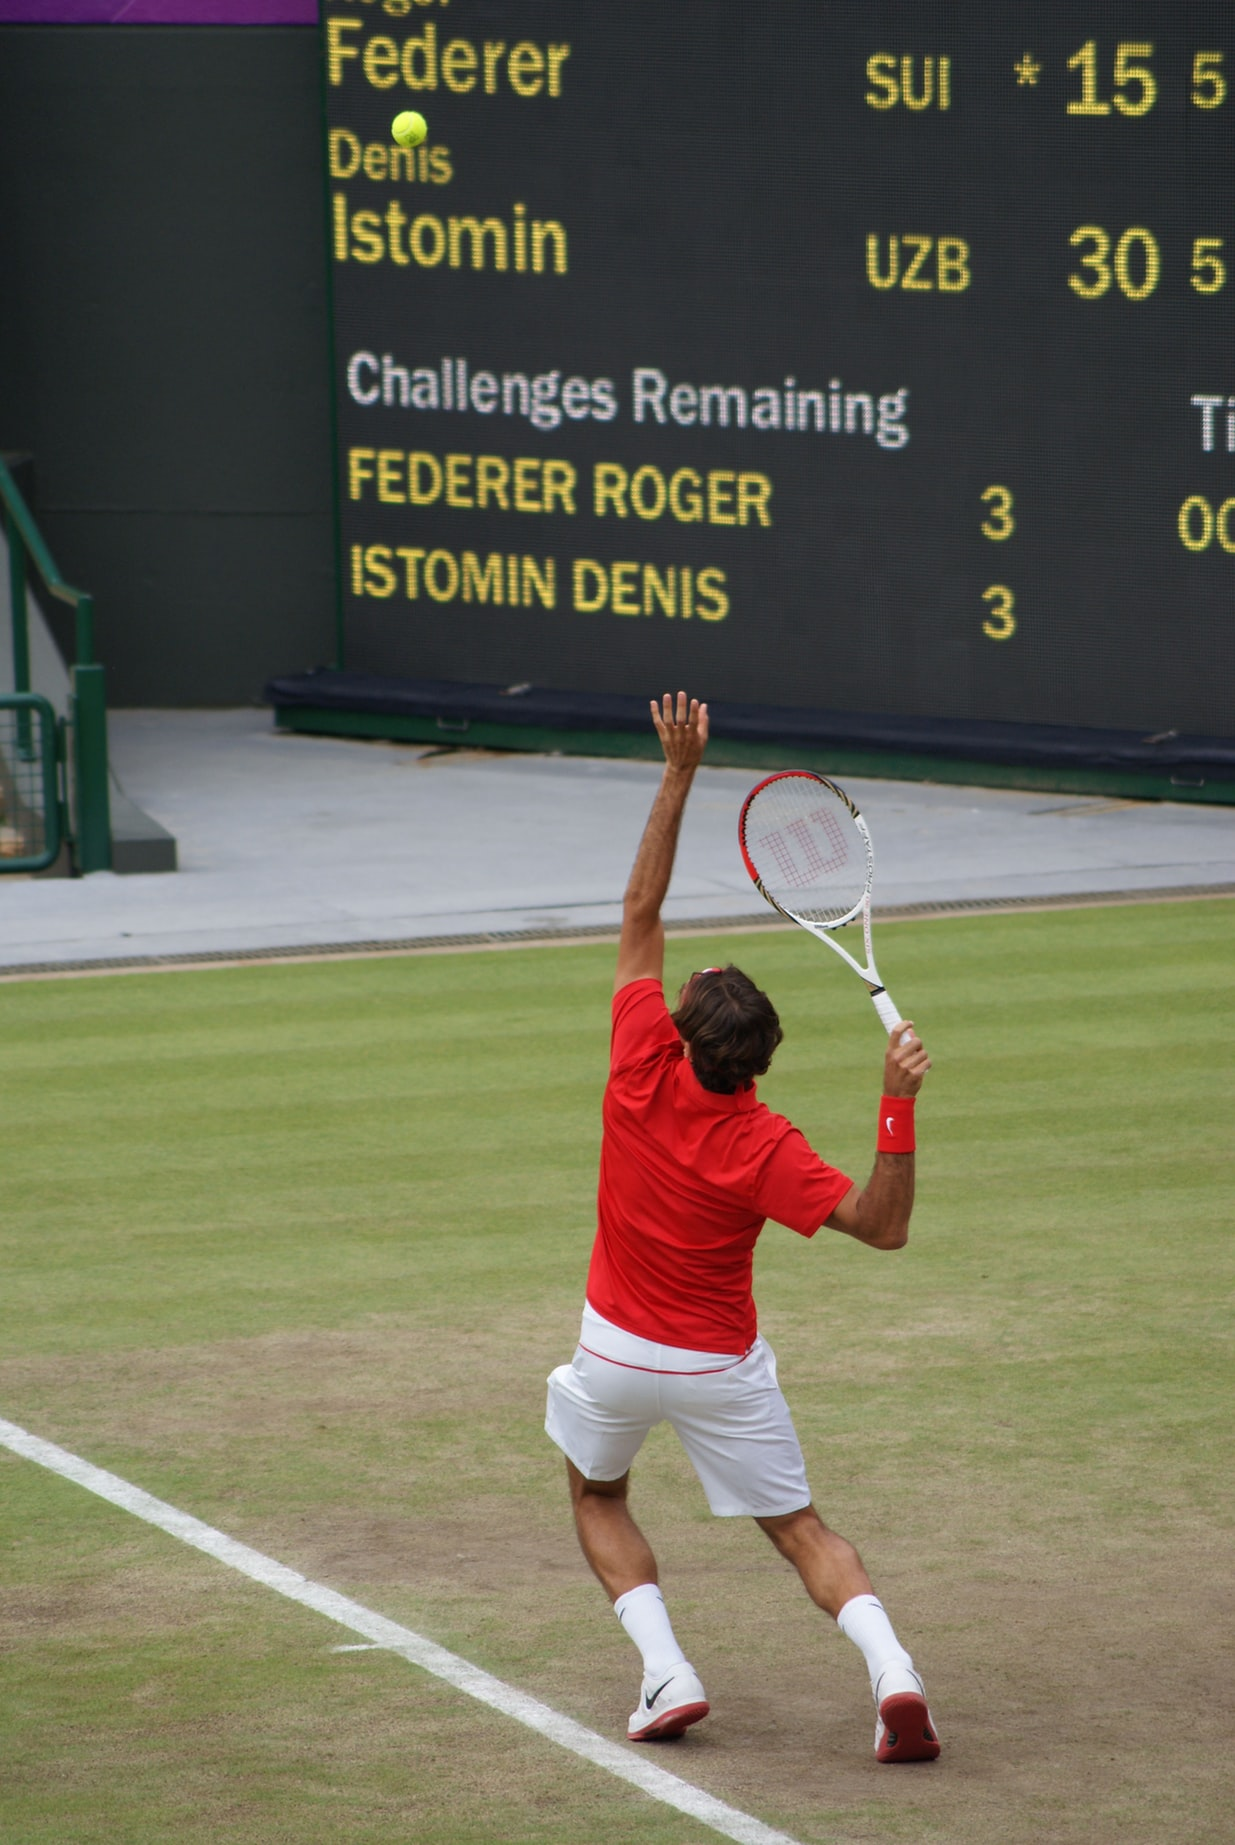 The famous tennis player Roger Federer doing one of his famous serves